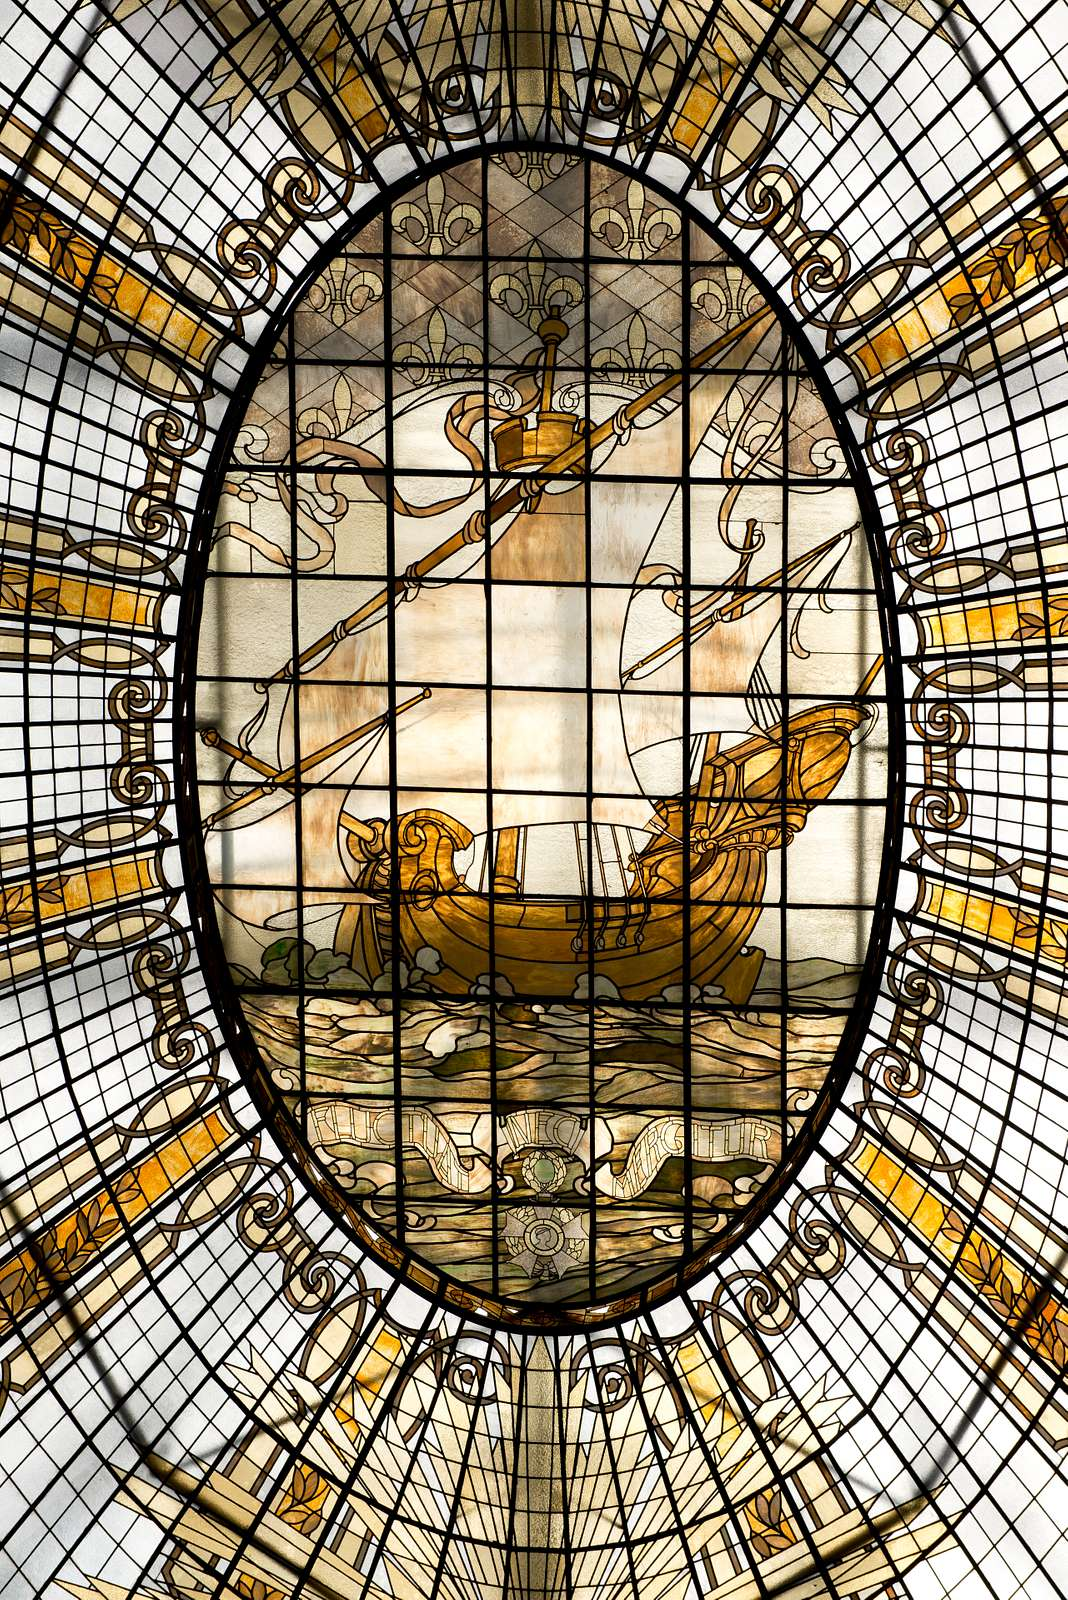 Stained glass in Neiman Marcus store, San Francisco, California